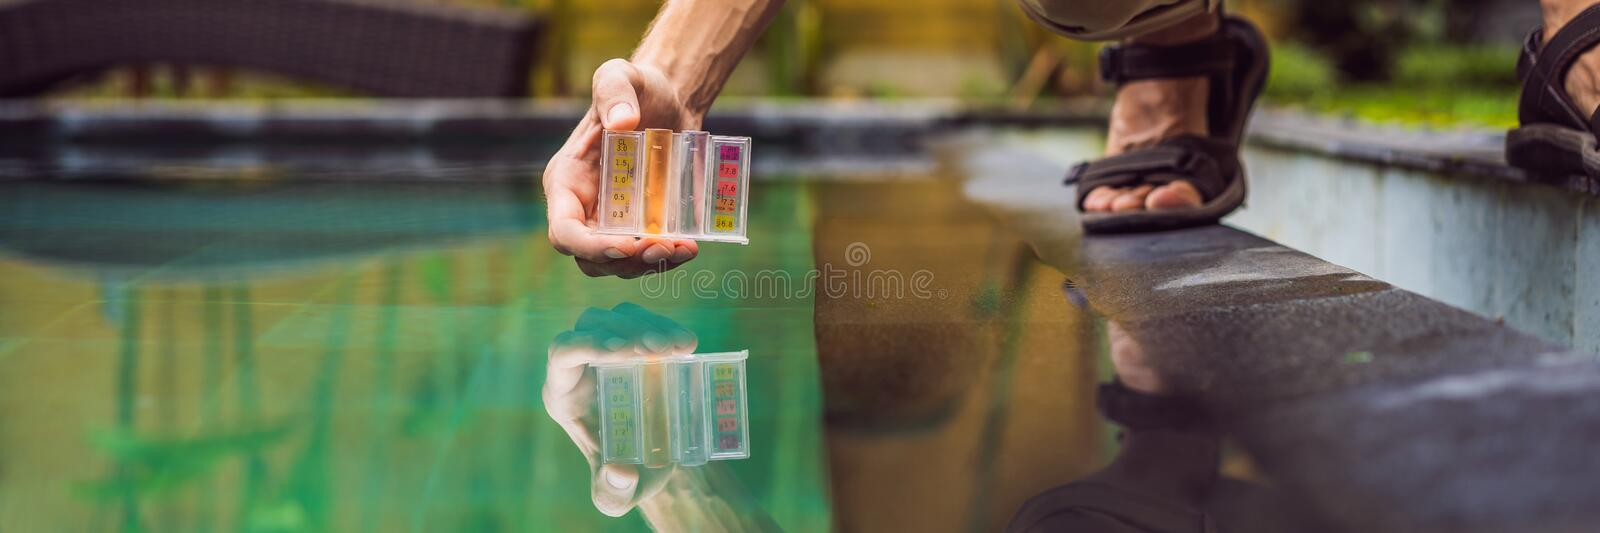 Pool worker checks the pool for safety. Measurement of chlorine and PH of a pool BANNER, LONG FORMAT stock image